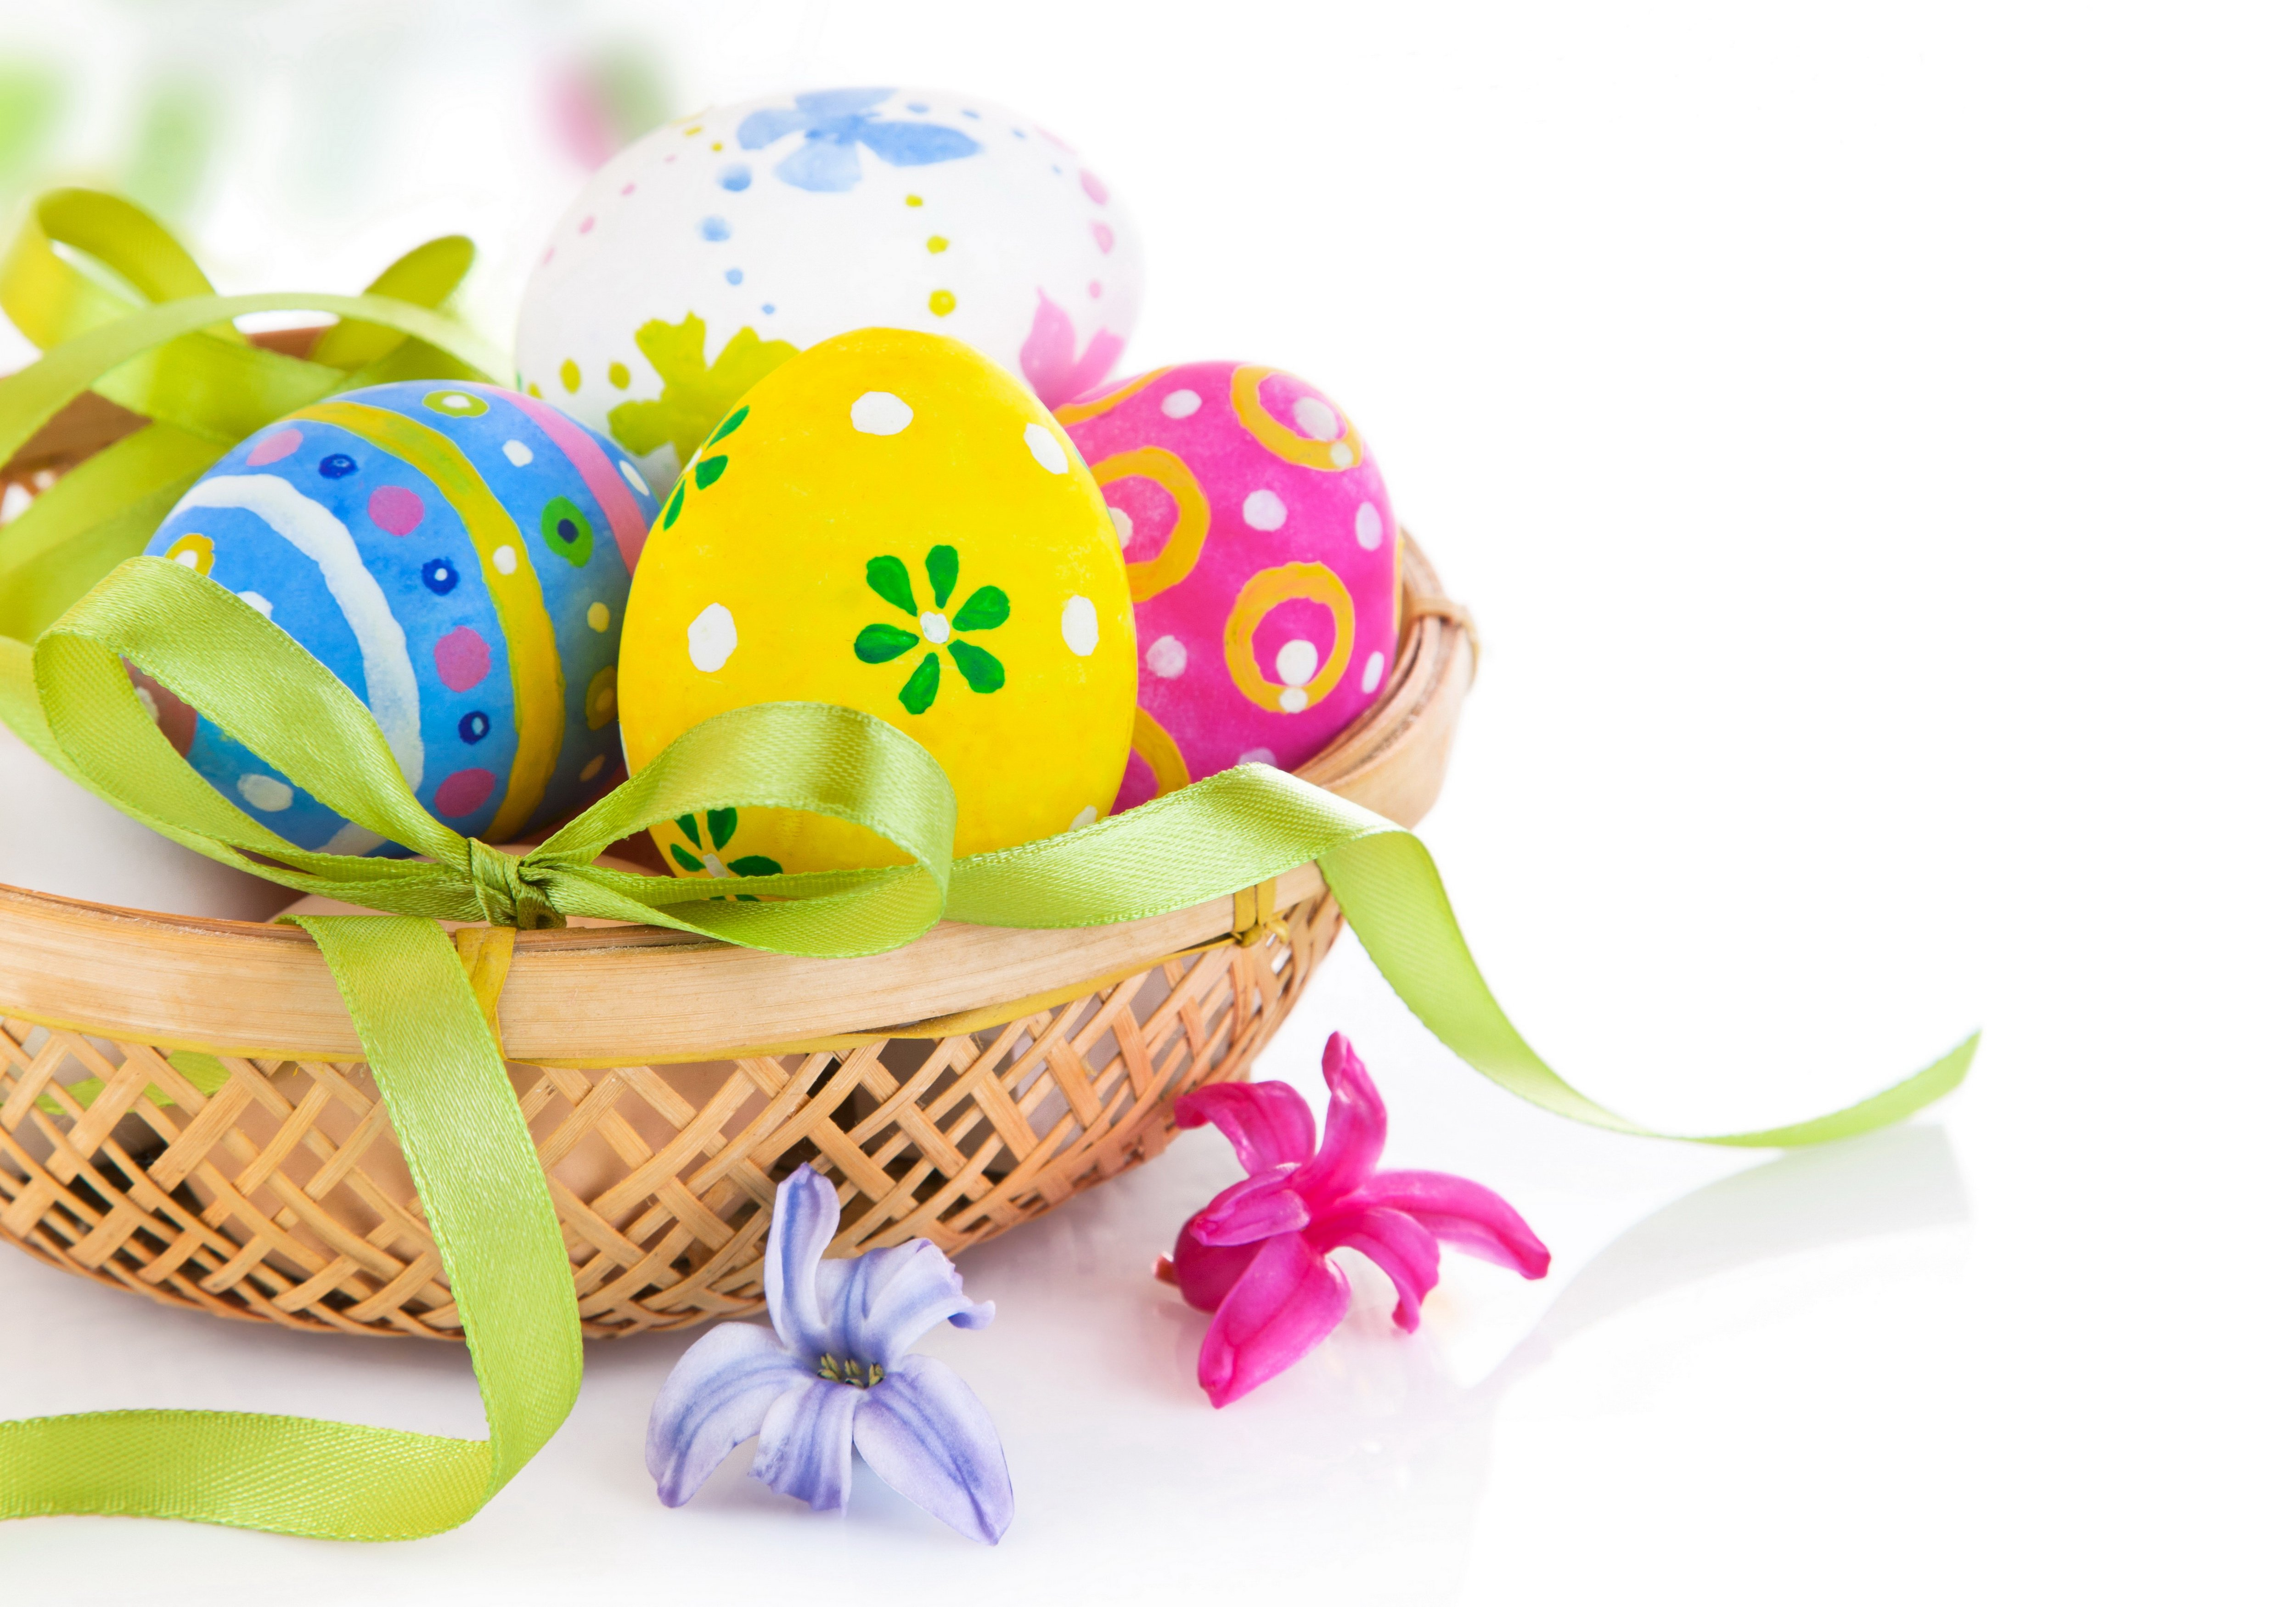 Easter Basket Wallpapers HD Easter Images 5000x3499